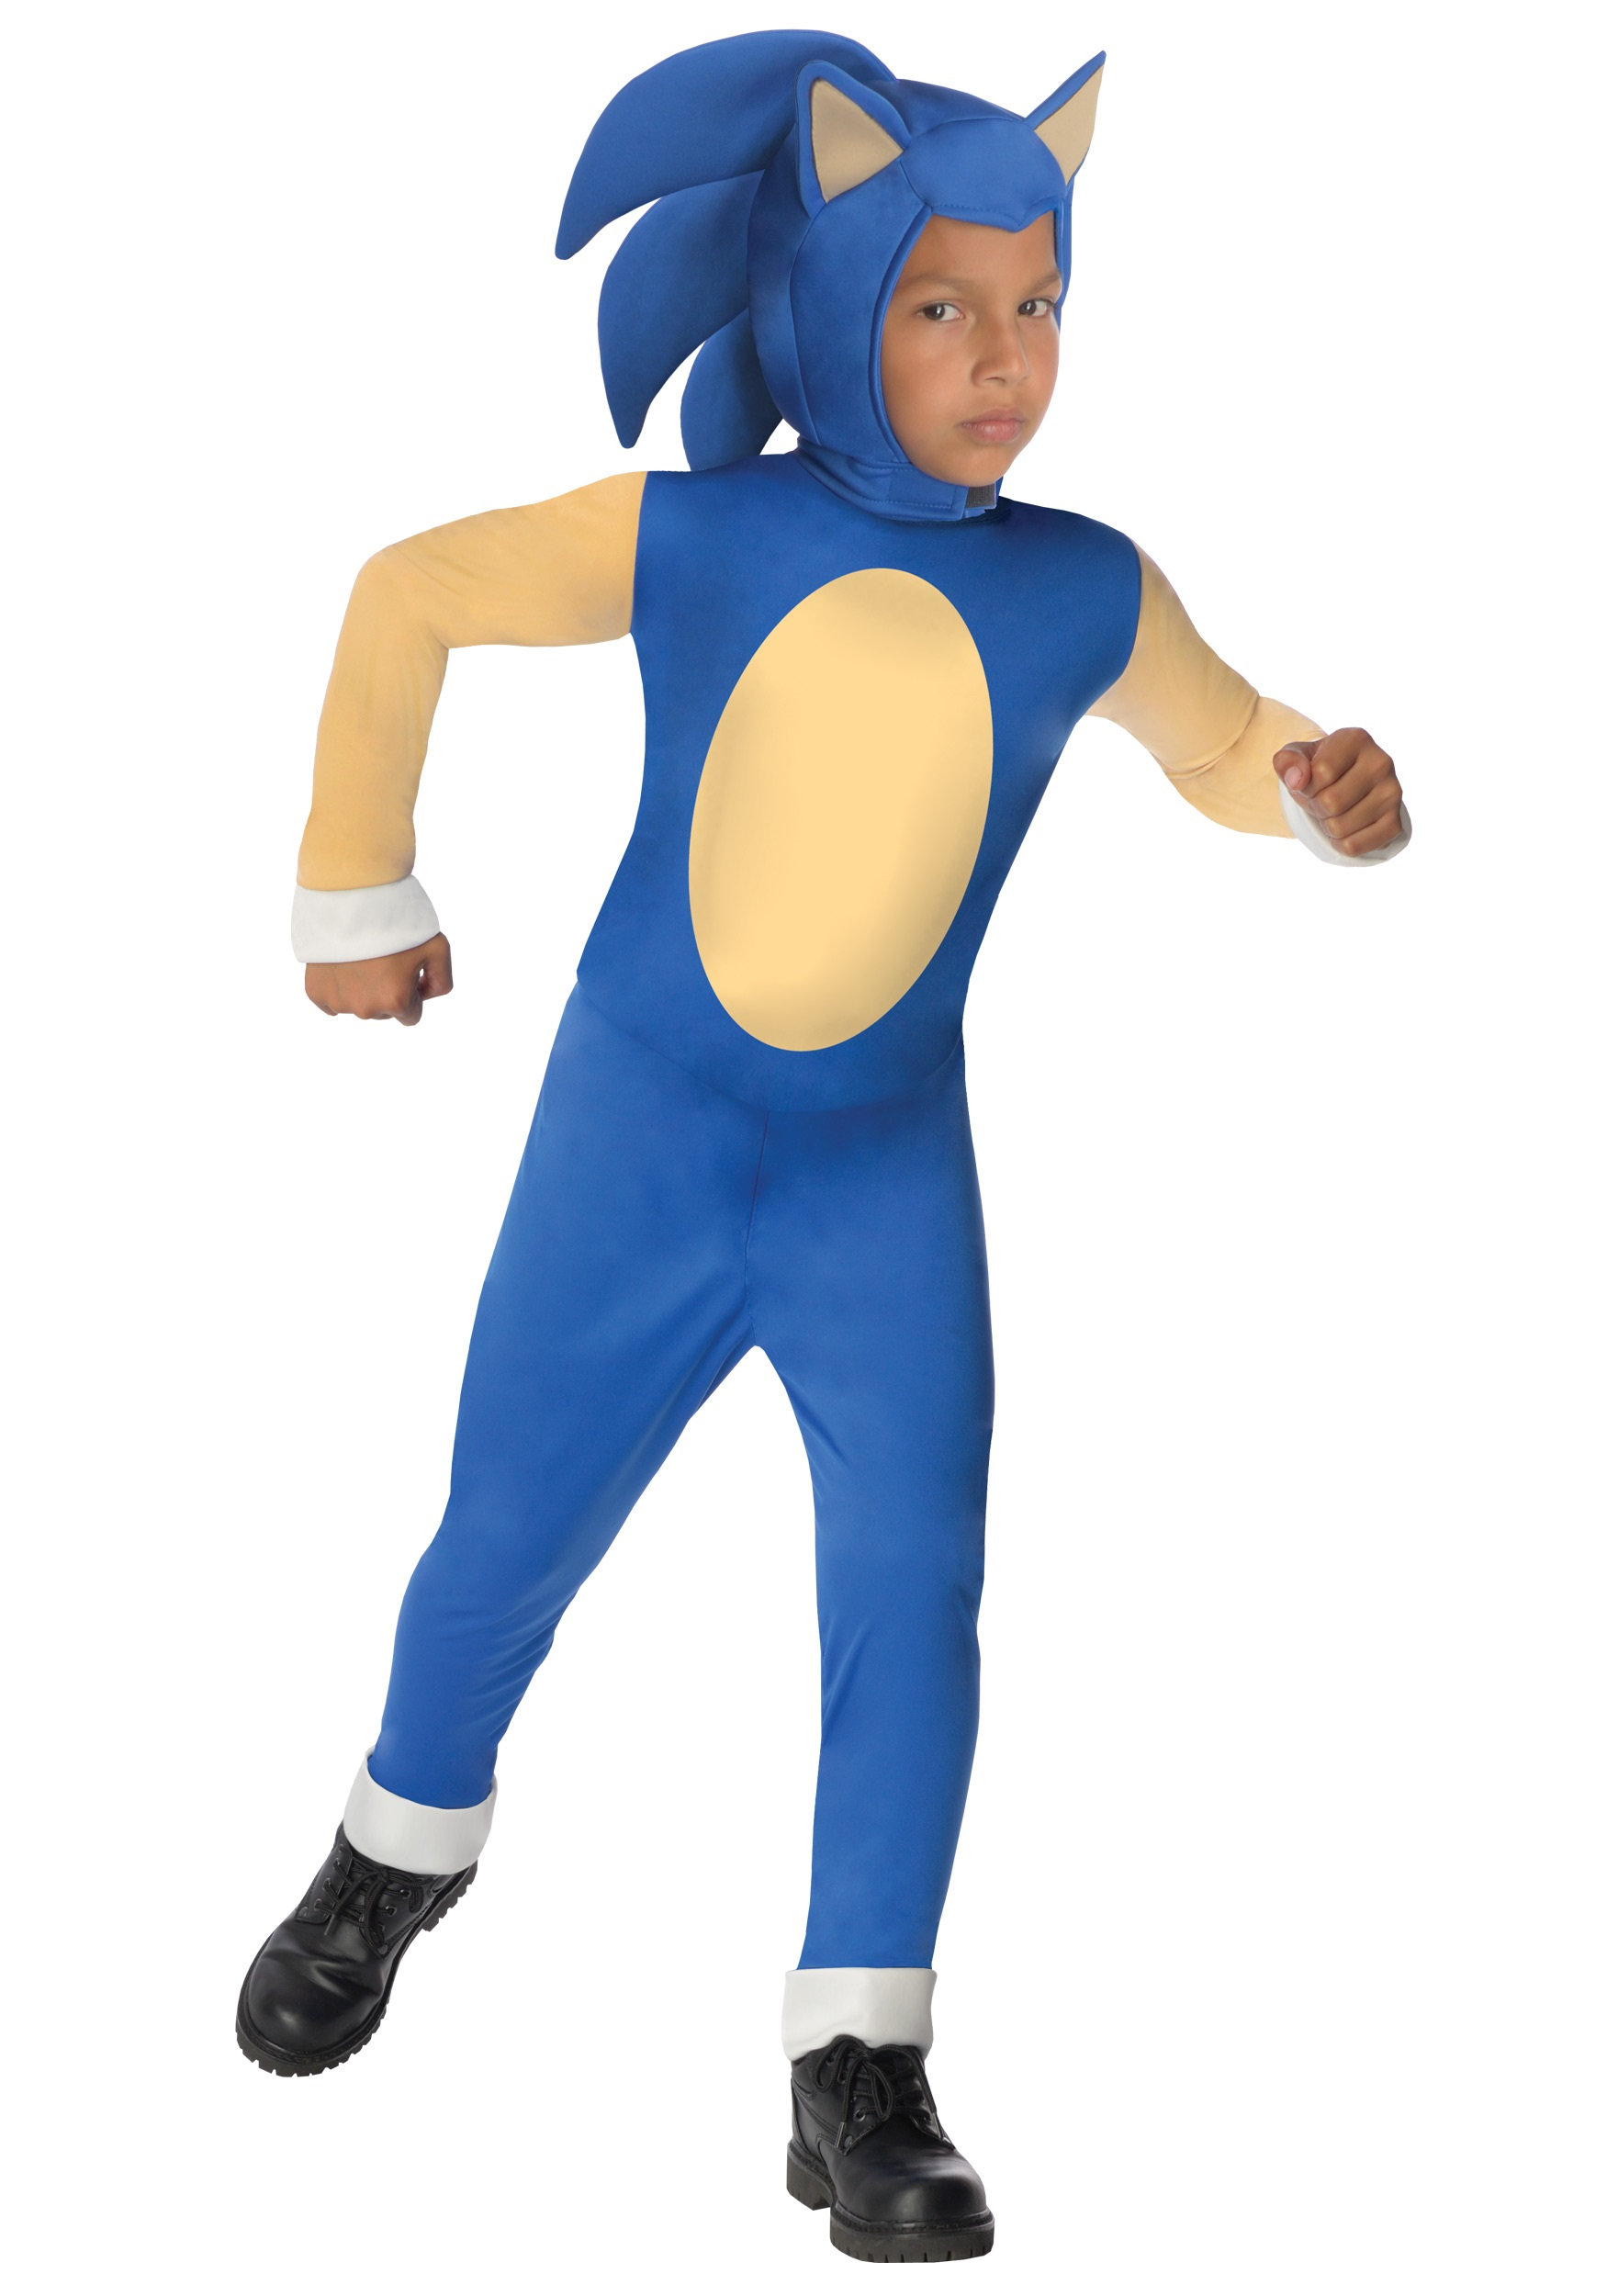 Child Sonic Video Game Character Costume  sc 1 st  Halloween Costume & Child Sonic Video Game Character Costume - Sonic the Hedgehog ...